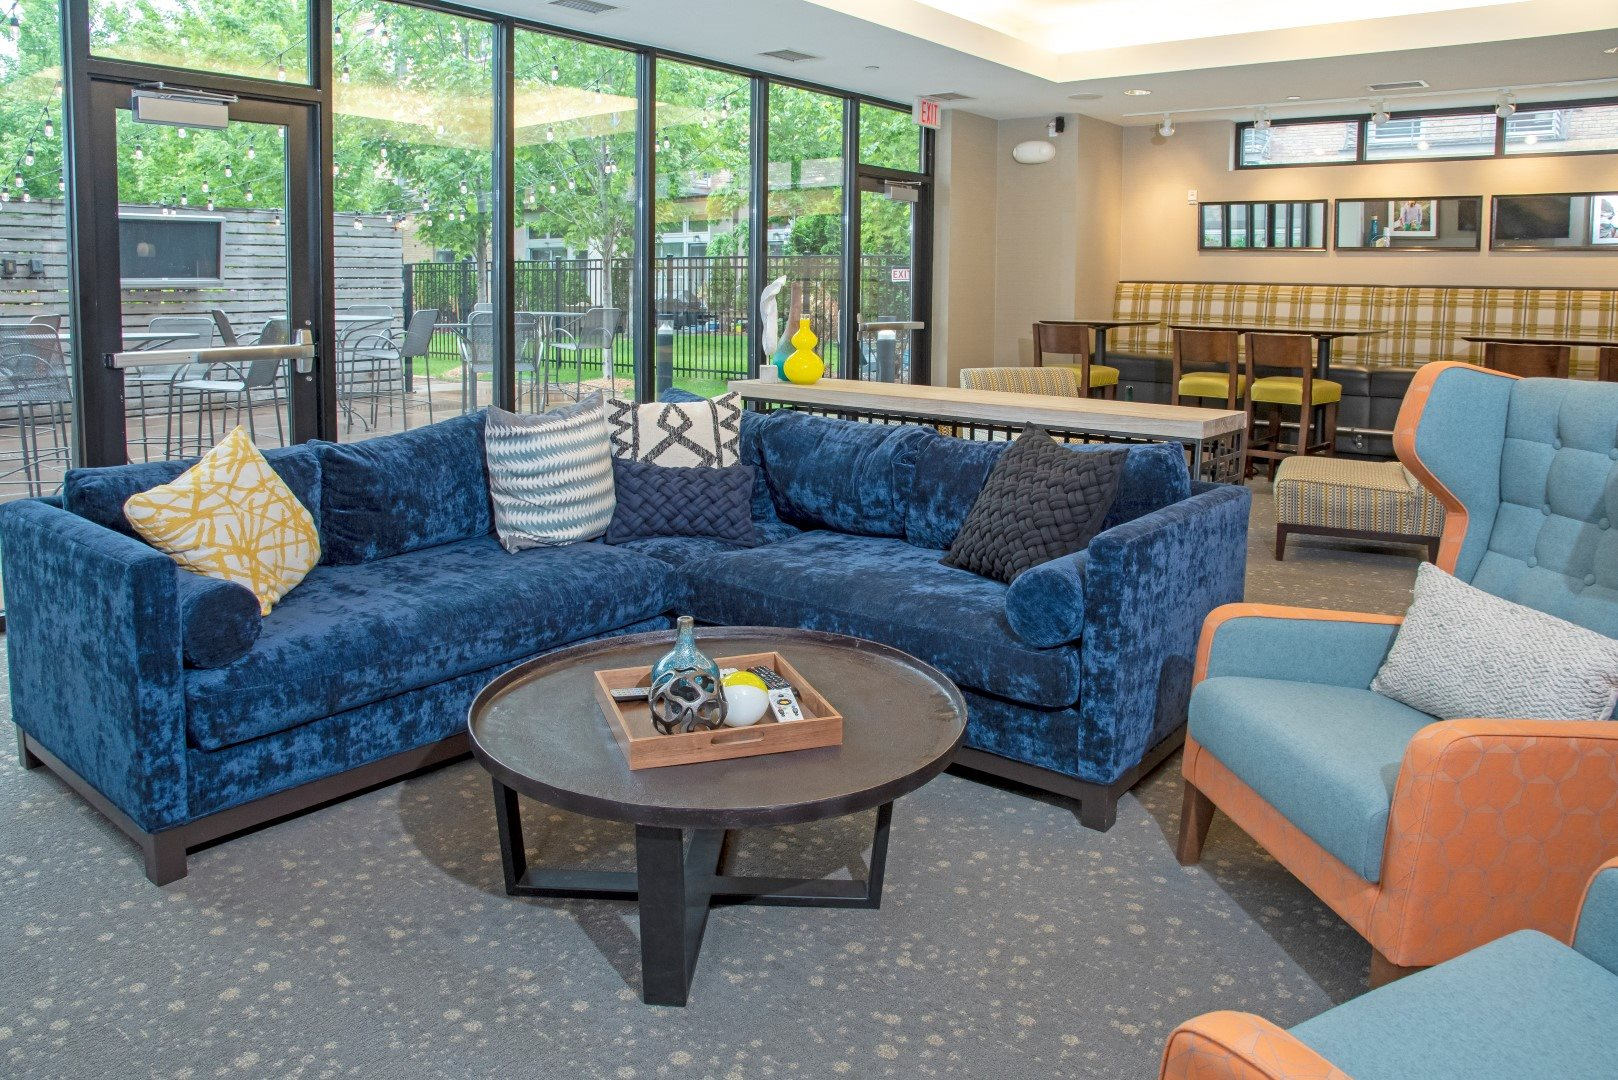 Cozy Couches in the Community Room at Third North, Minnesota, 55401